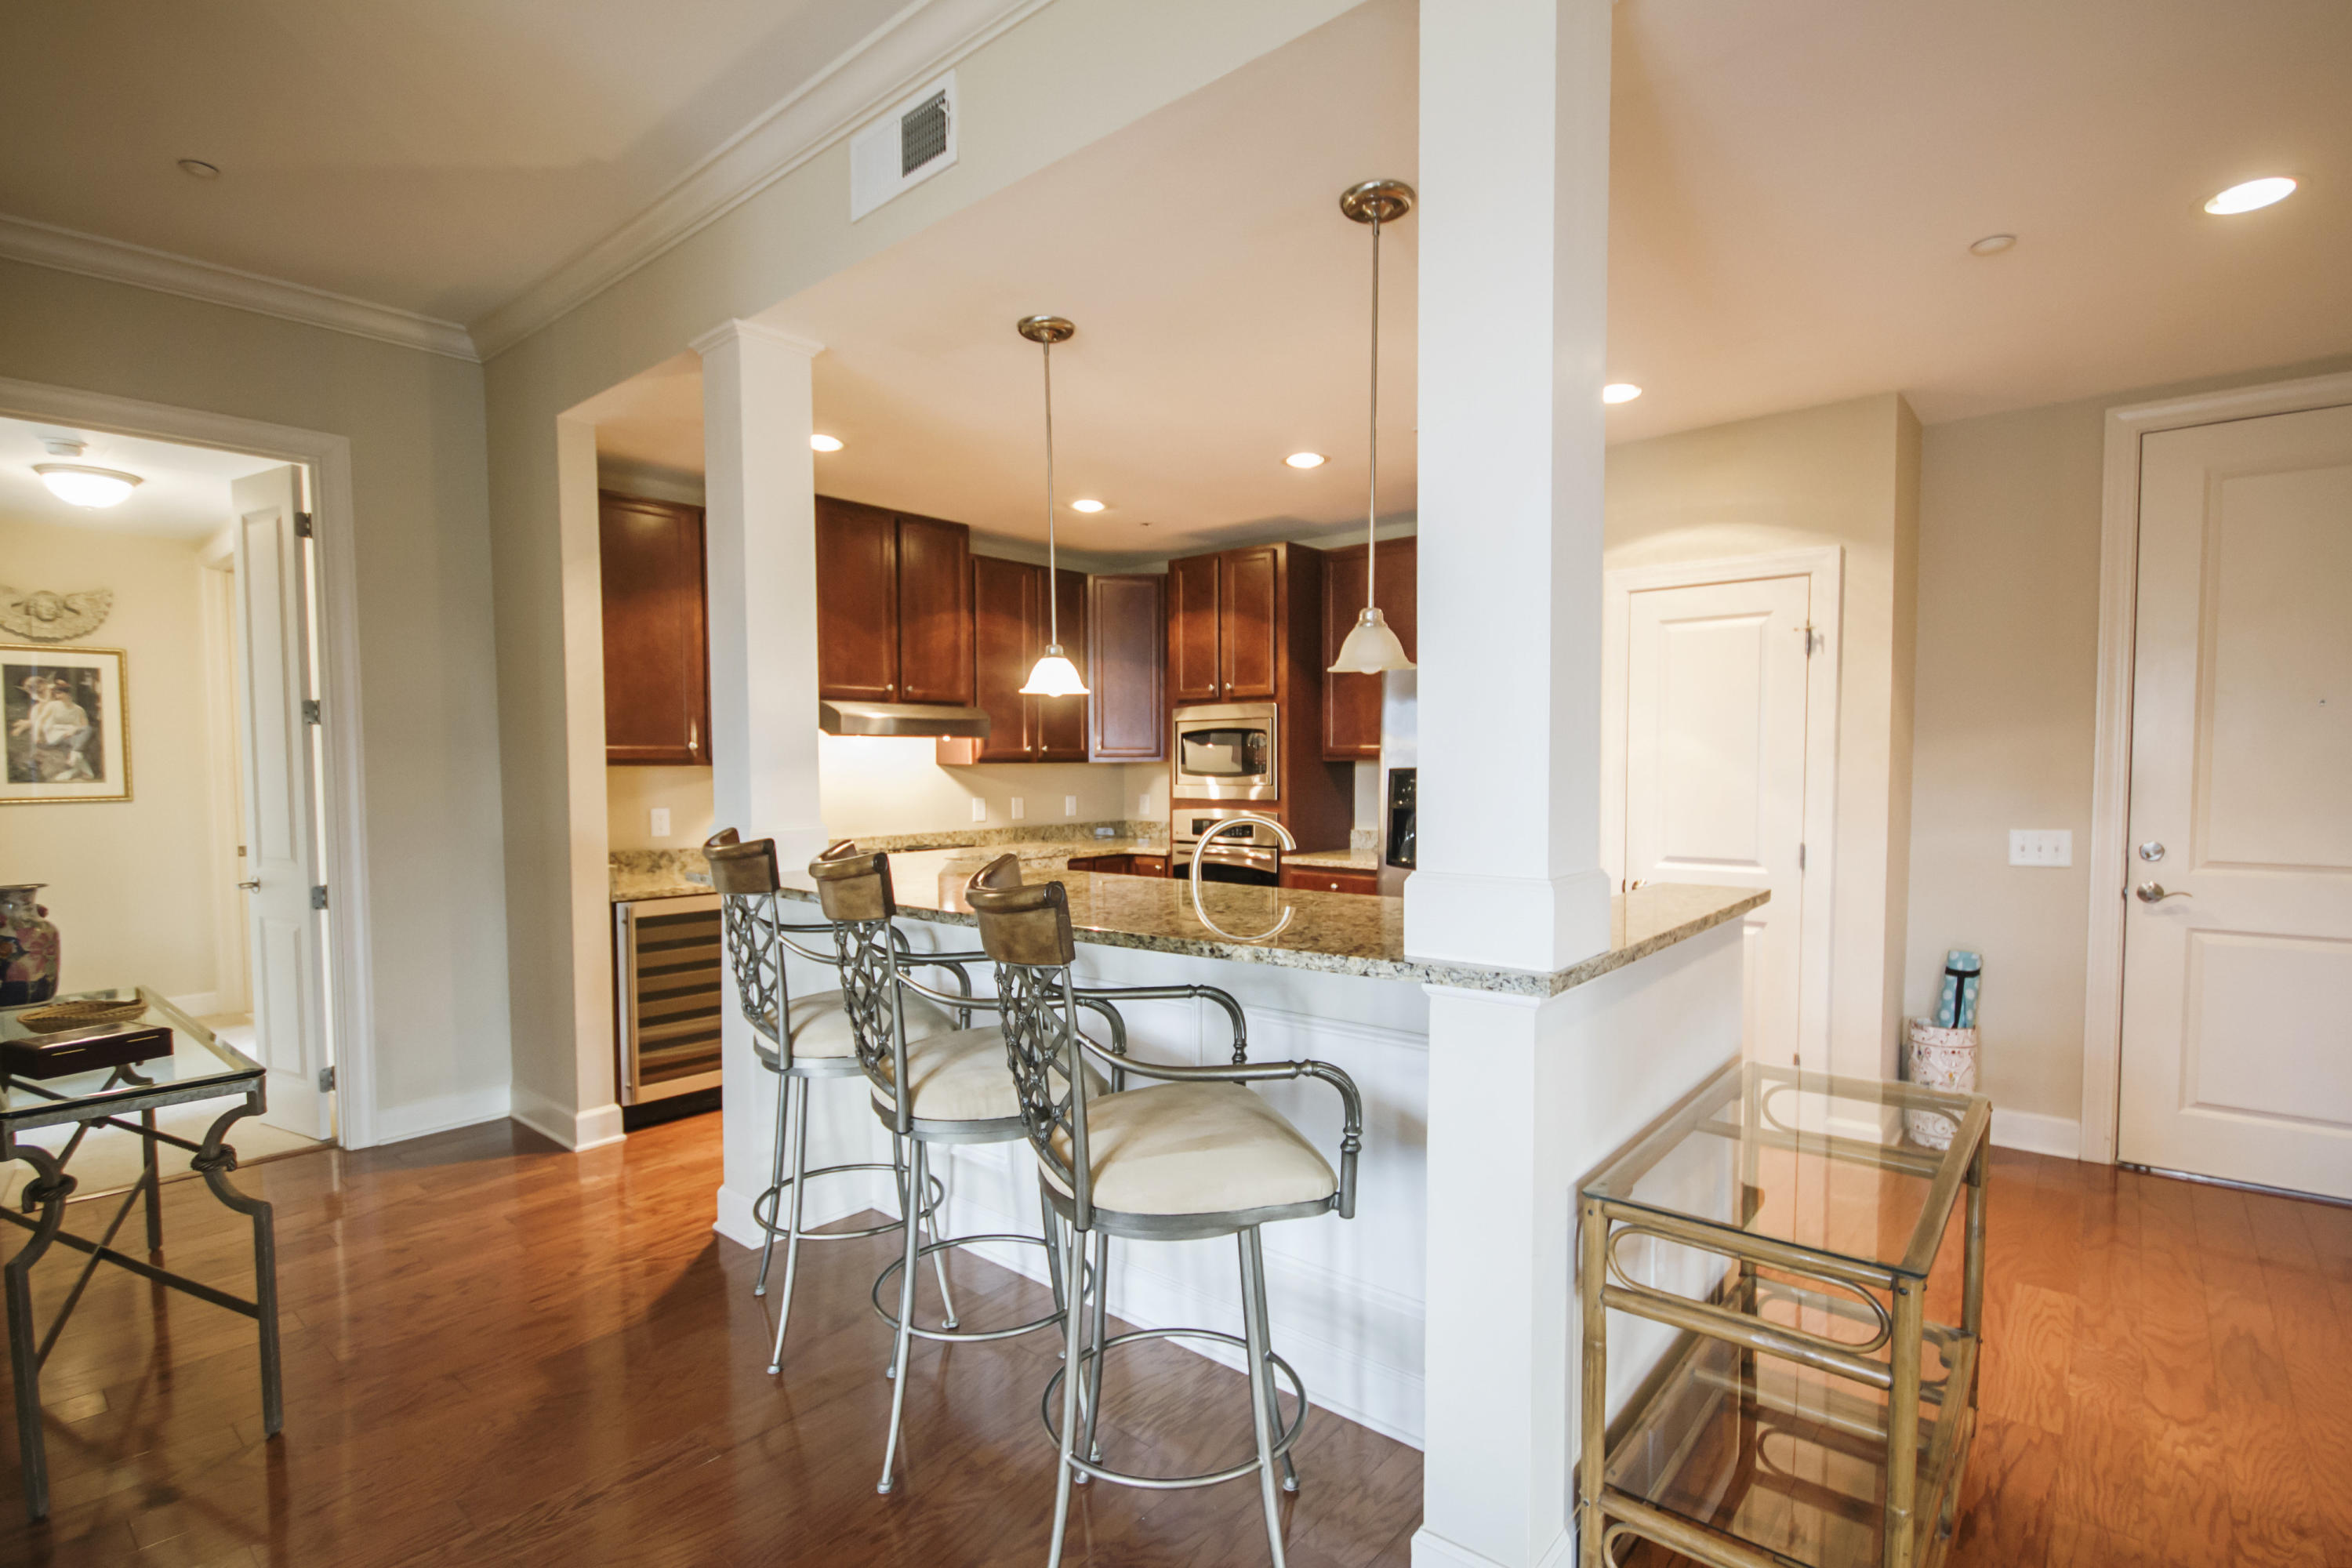 Pier View Homes For Sale - 125 Pier View, Charleston, SC - 12